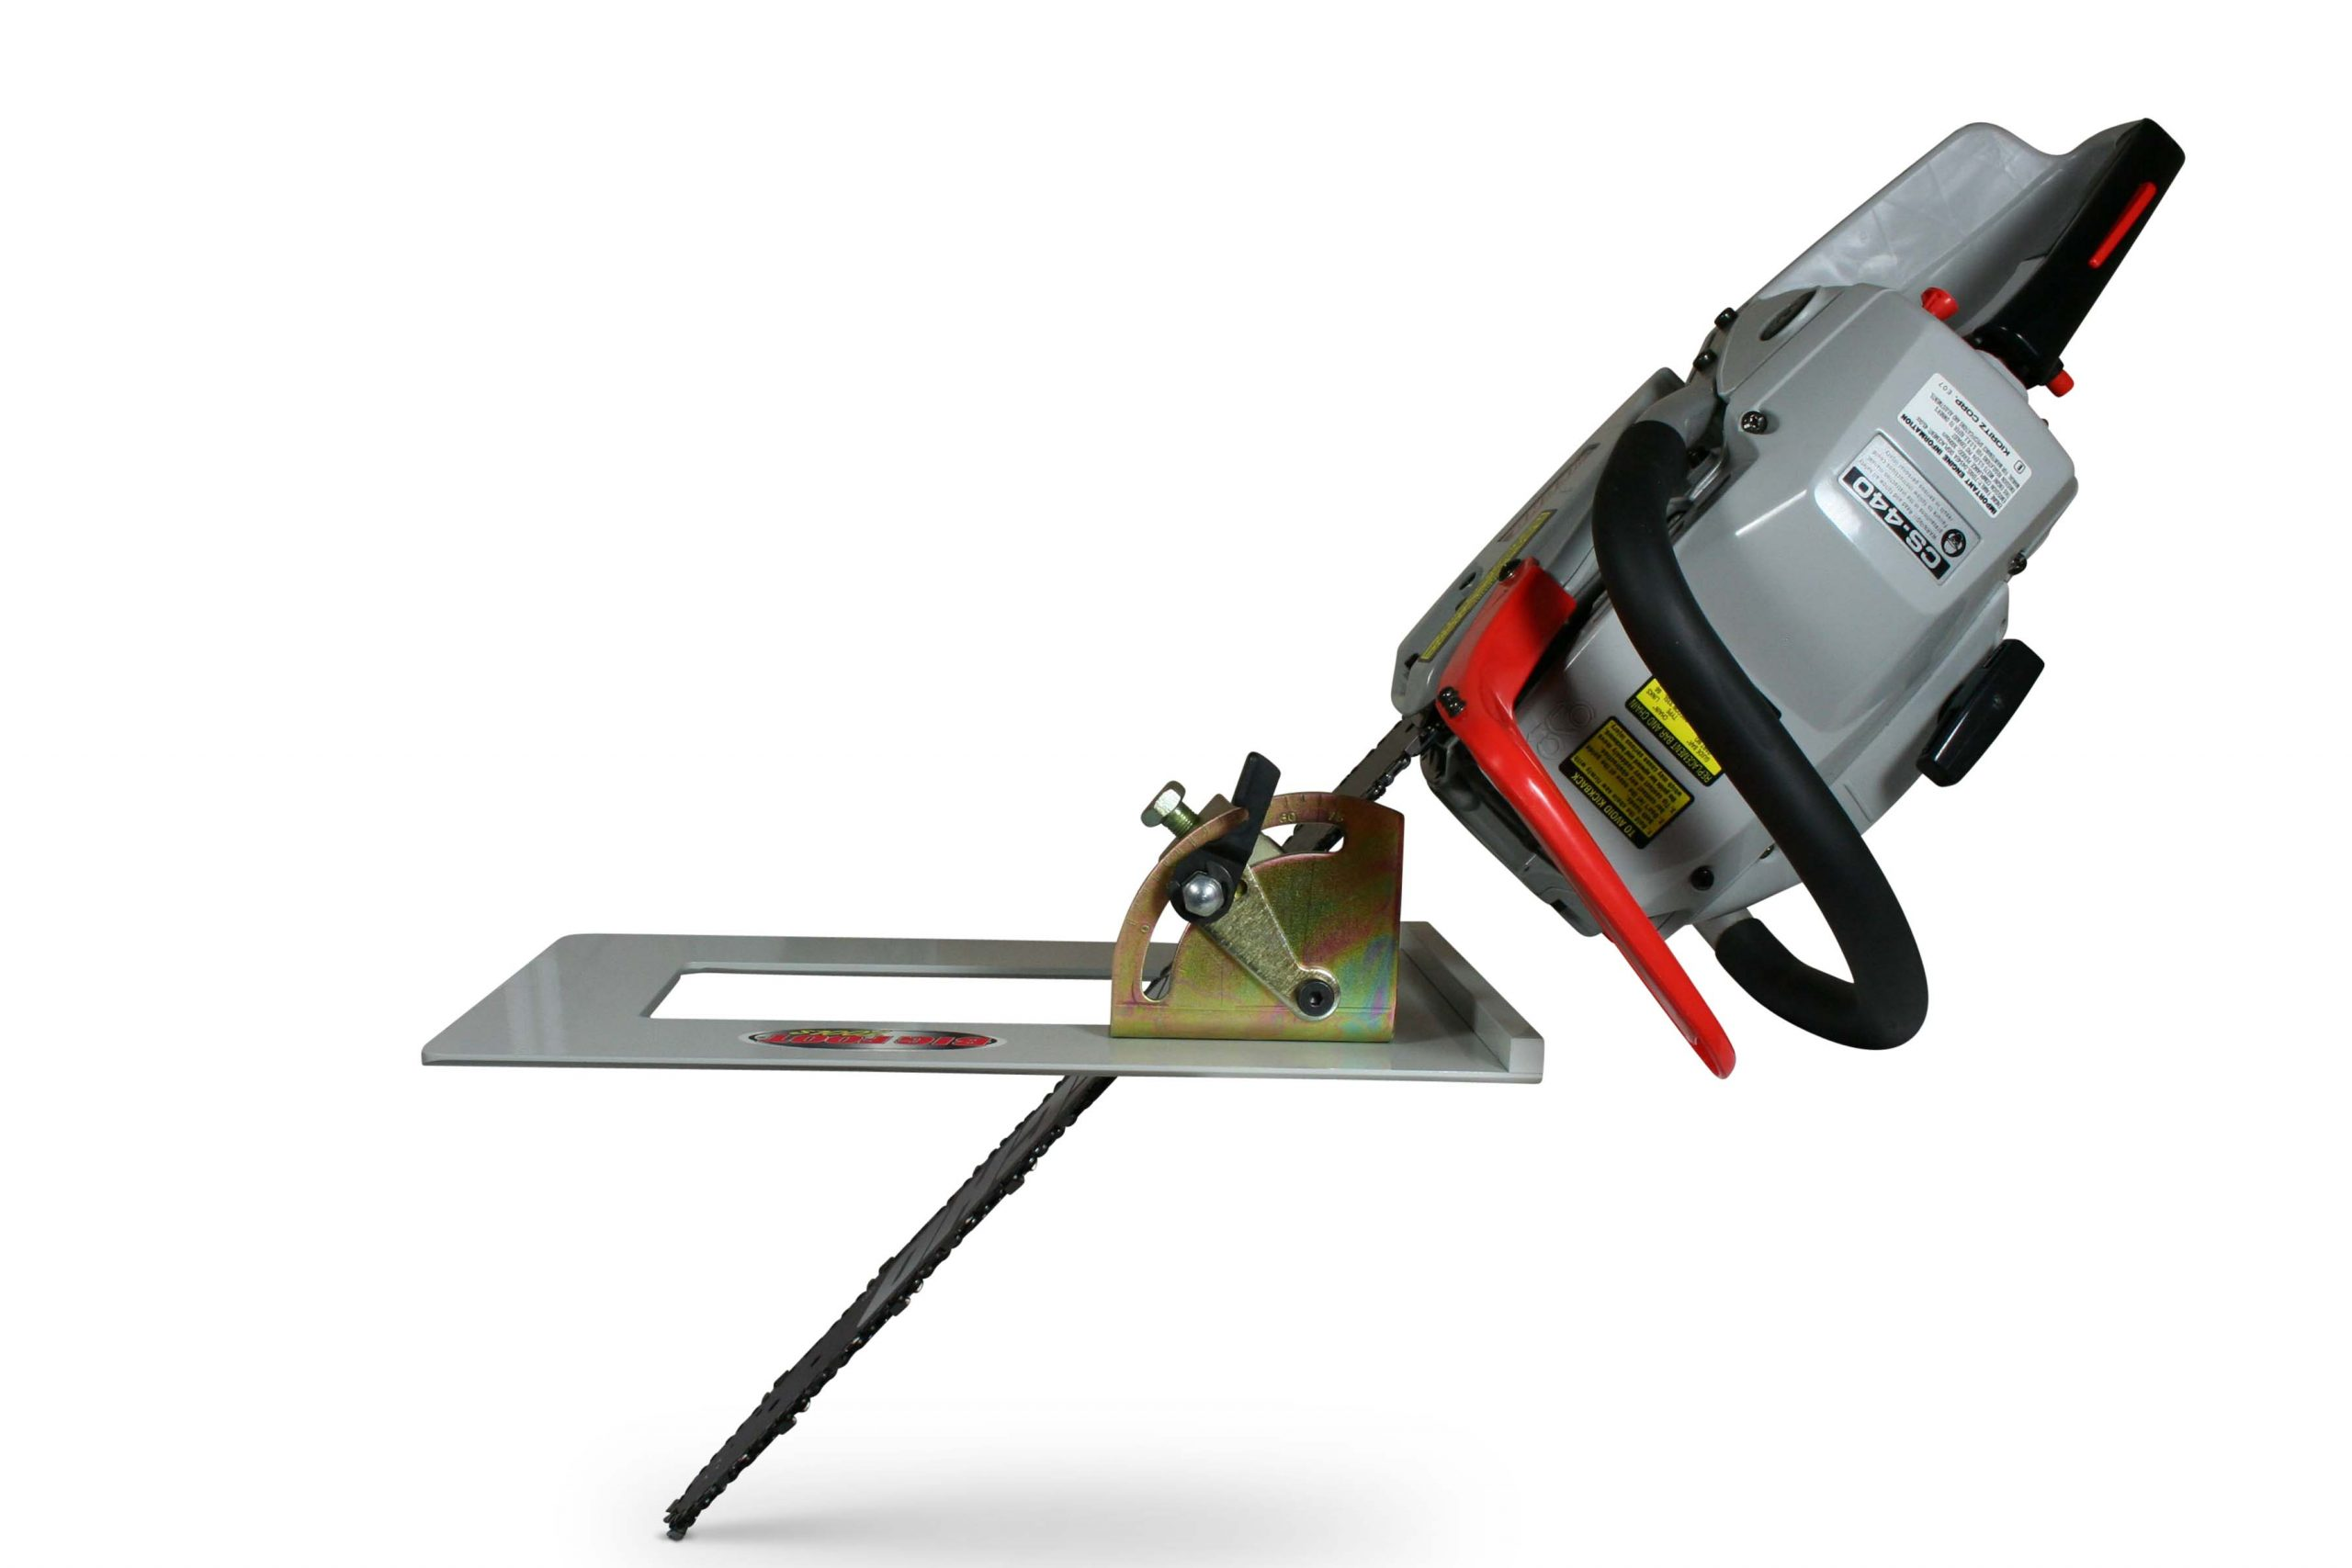 Big Foot Head Cutter - The Proper Angle Every Time